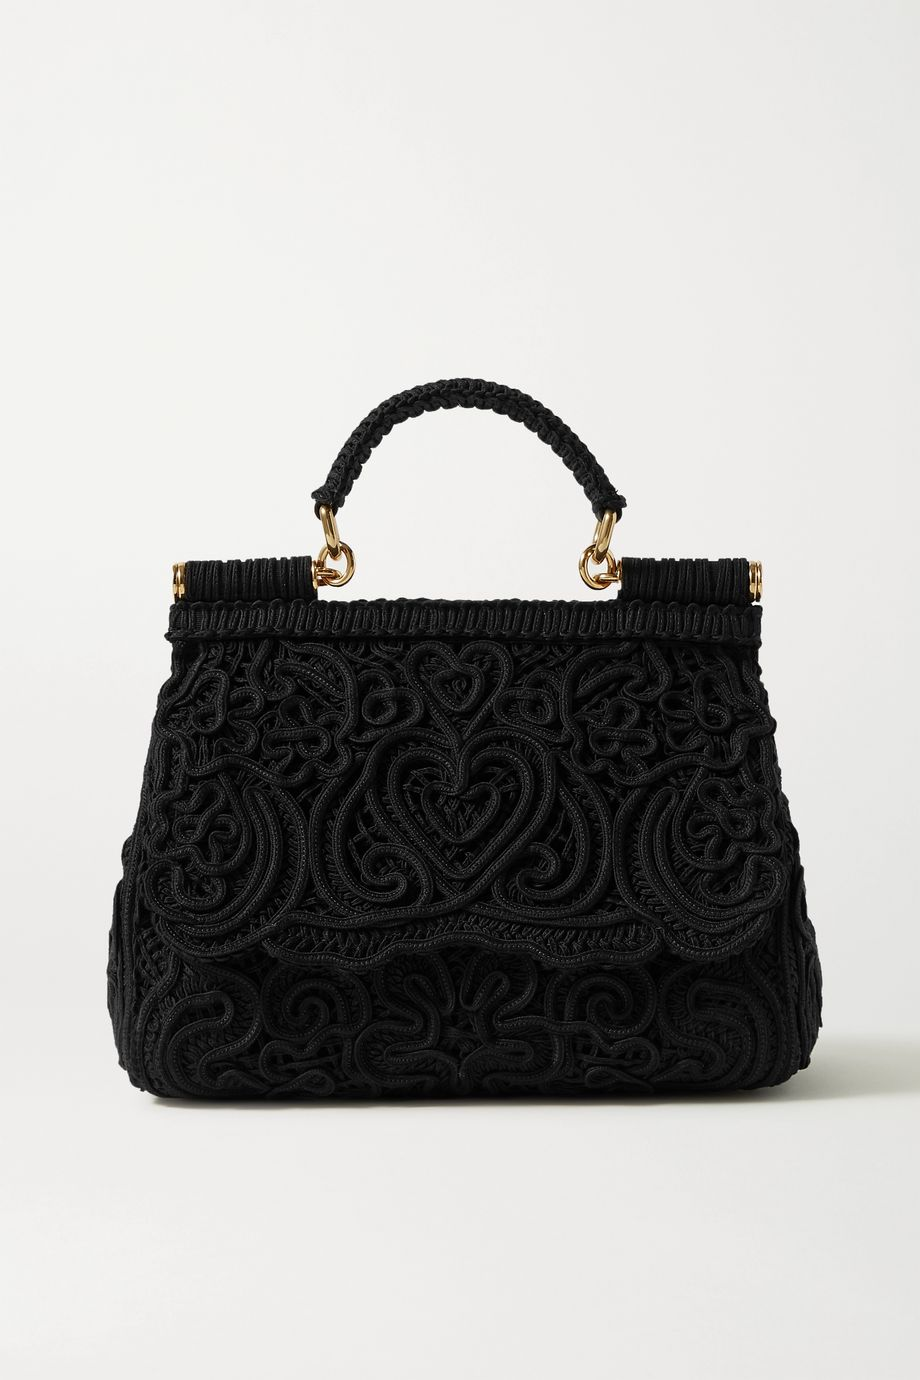 Dolce & Gabbana Sicily crocheted tote